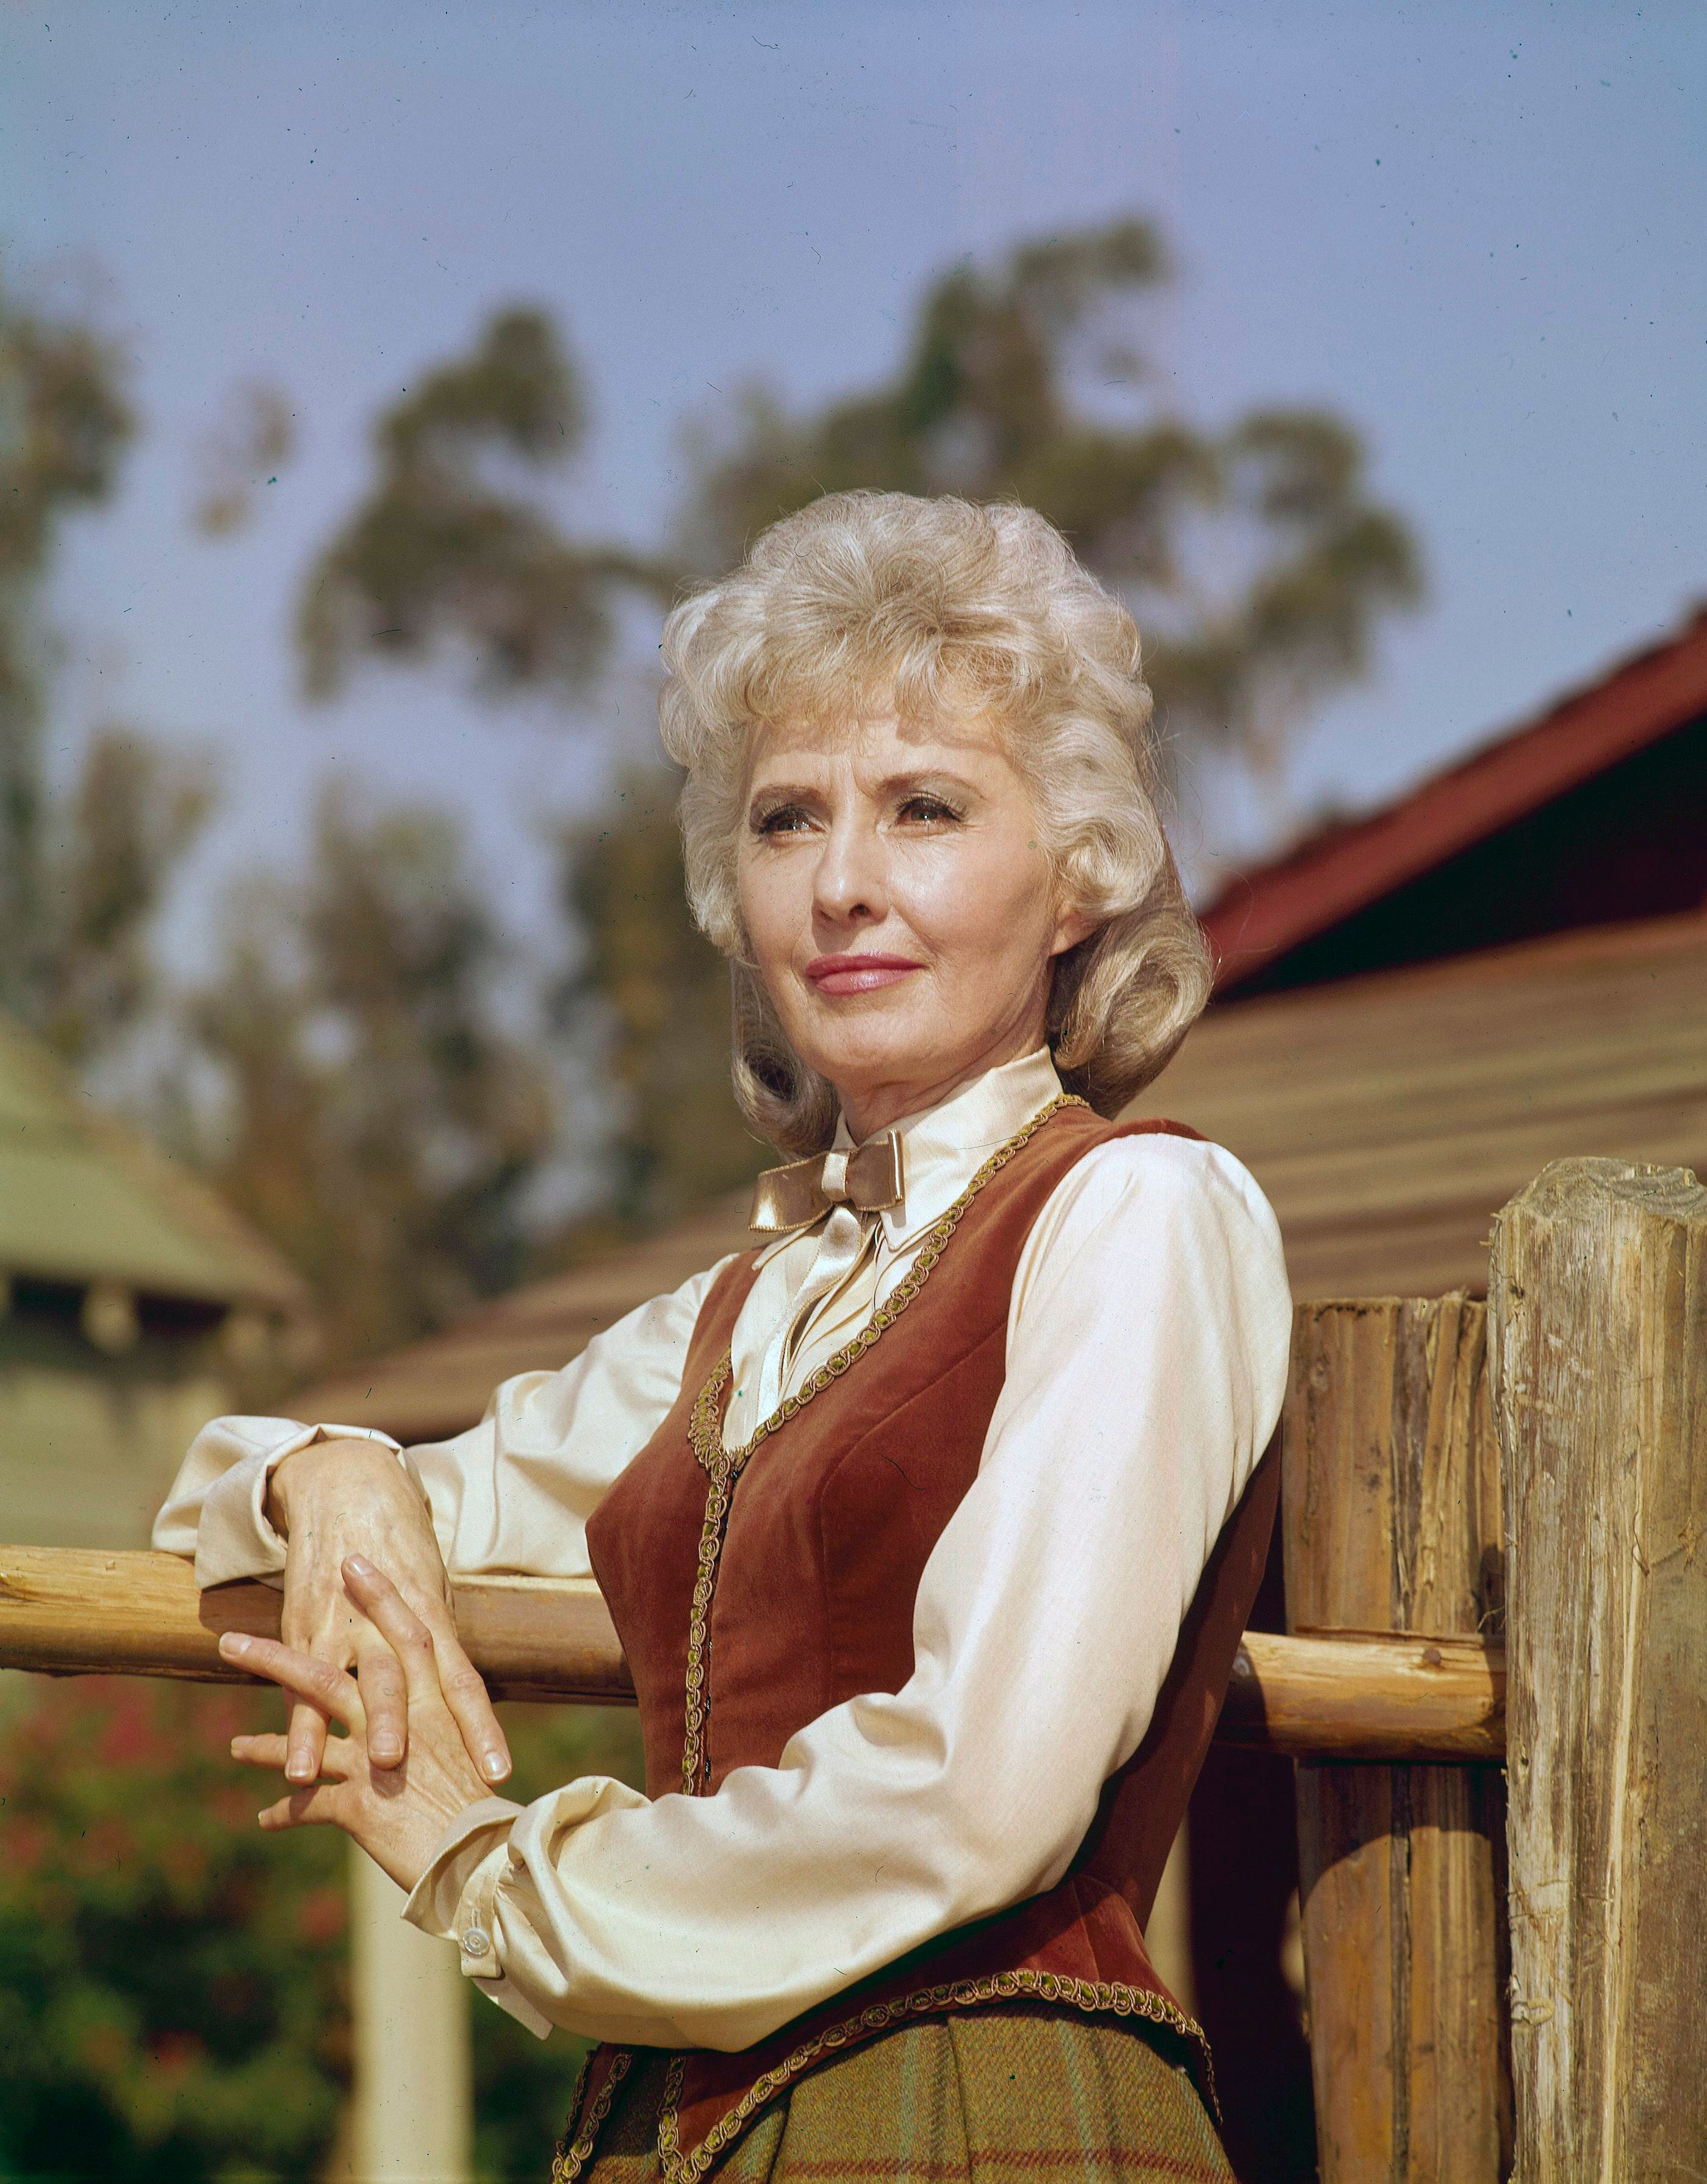 """Barbara Stanwyck in """"The Big Valley"""" 1967. 